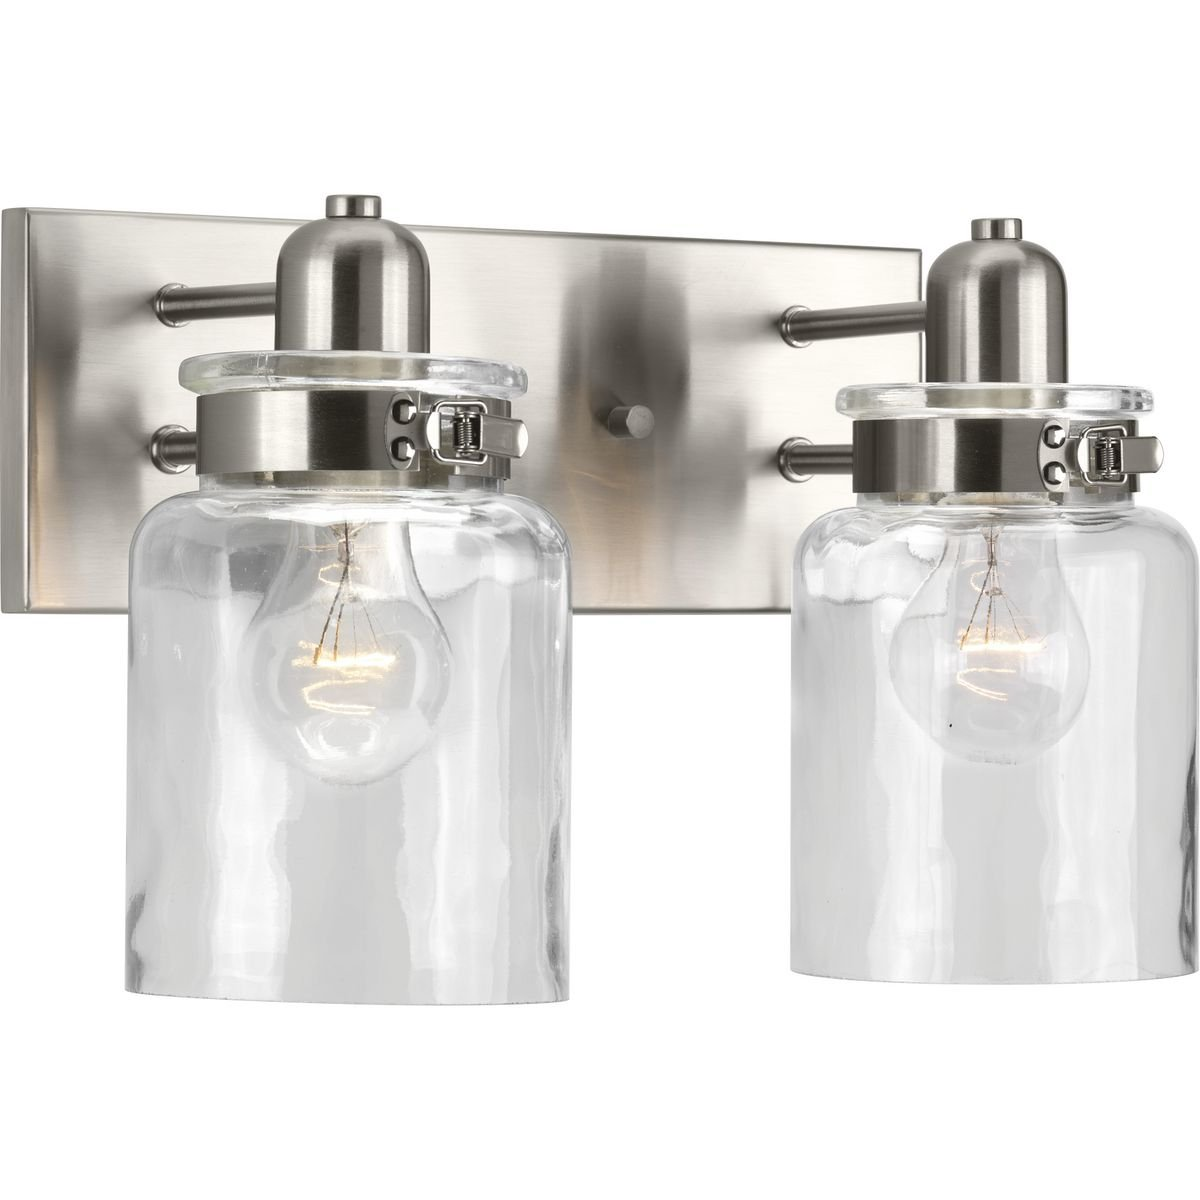 Progress Lighting P300046-009 Calhoun Collection Two-Light Bath & Vanity, Brushed Nickel by Progress Lighting